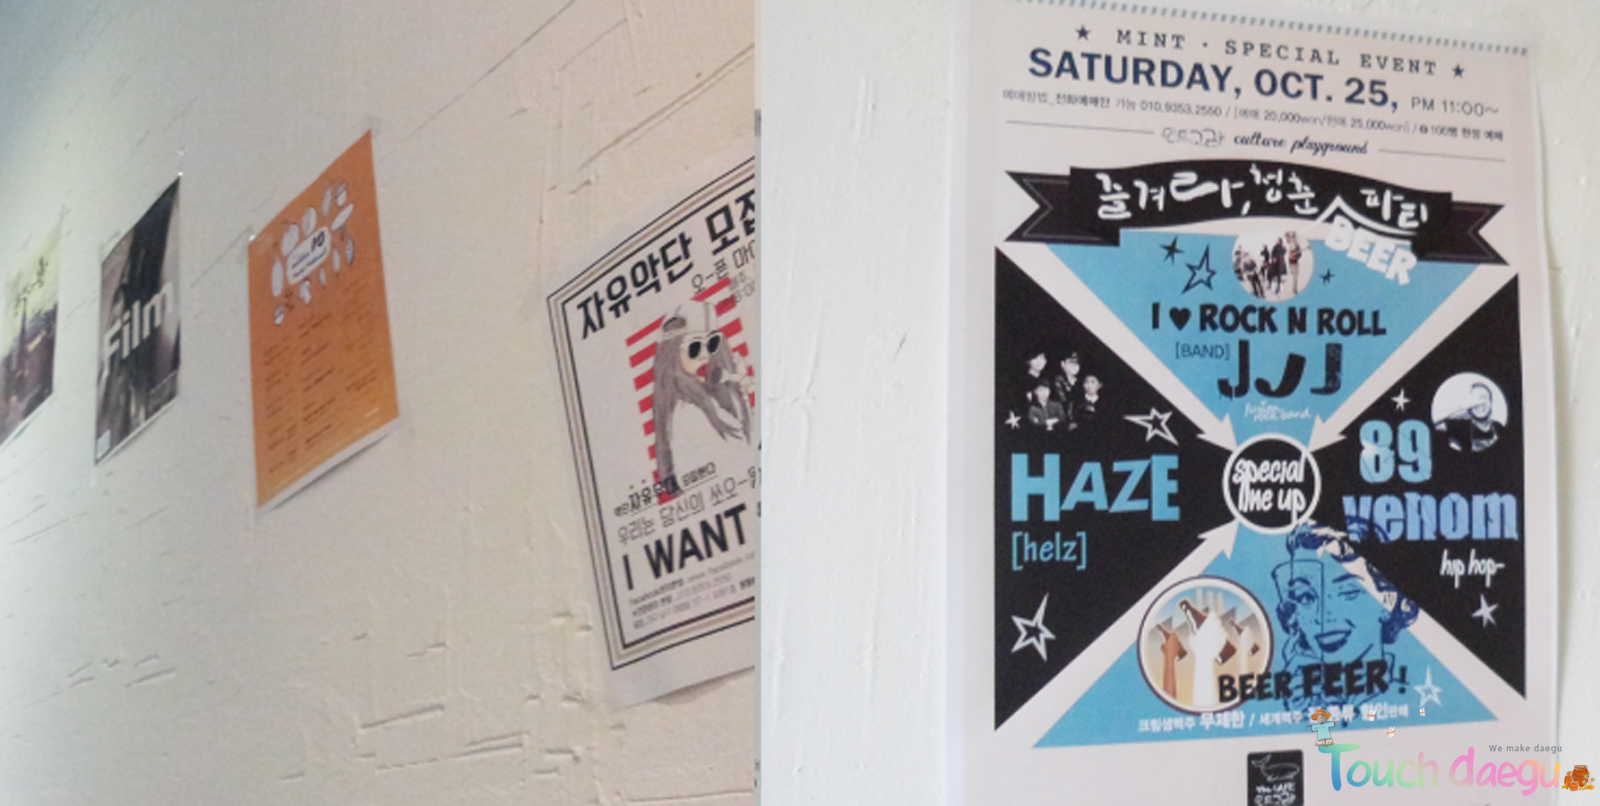 The posters of music program in Cafe Mint Whale